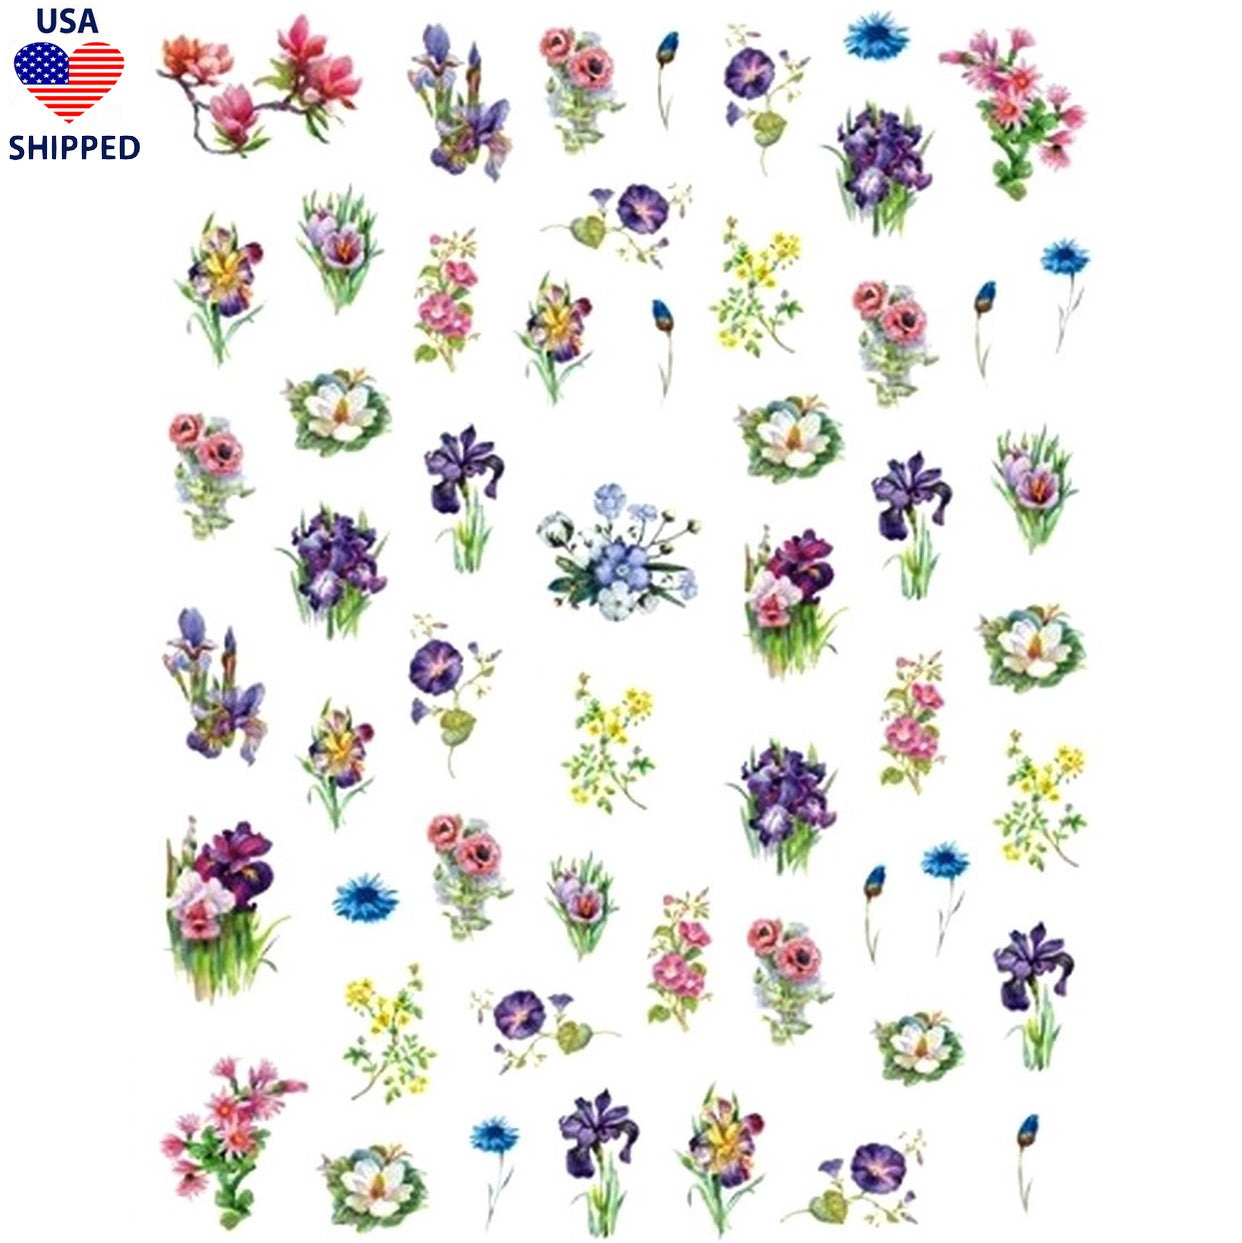 (USA) Floral Forrest Blooms Nail Stickers